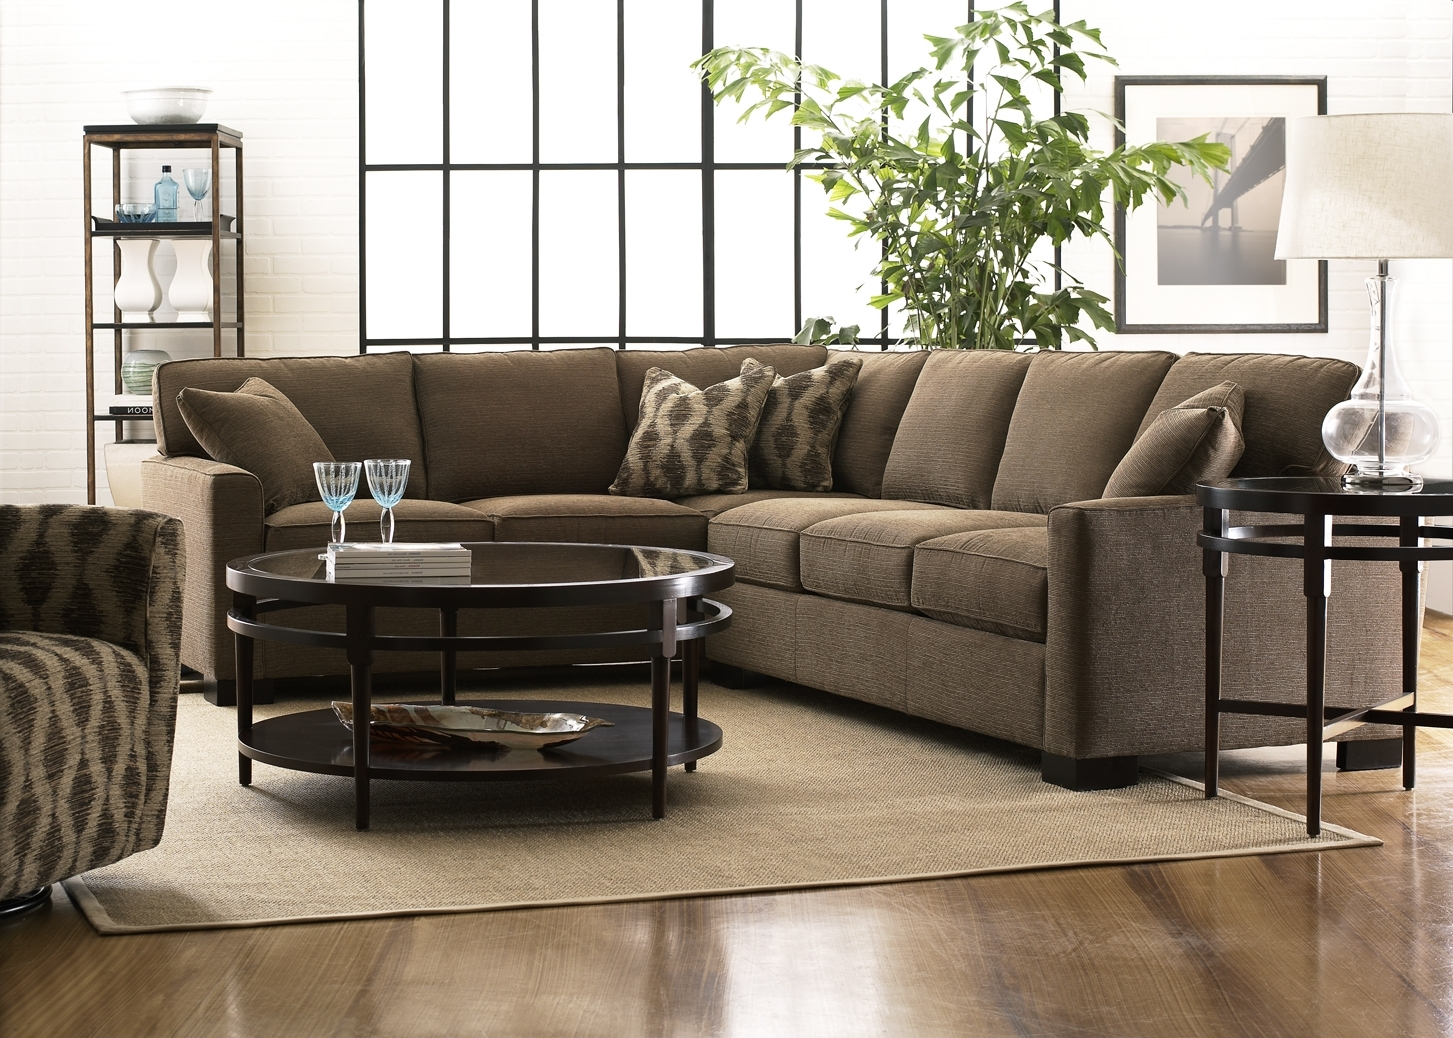 Newest Sectional Sofas For Small Spaces With Recliners Within Small Room Design: Best Sofas For Small Living Rooms Sectional (View 5 of 15)